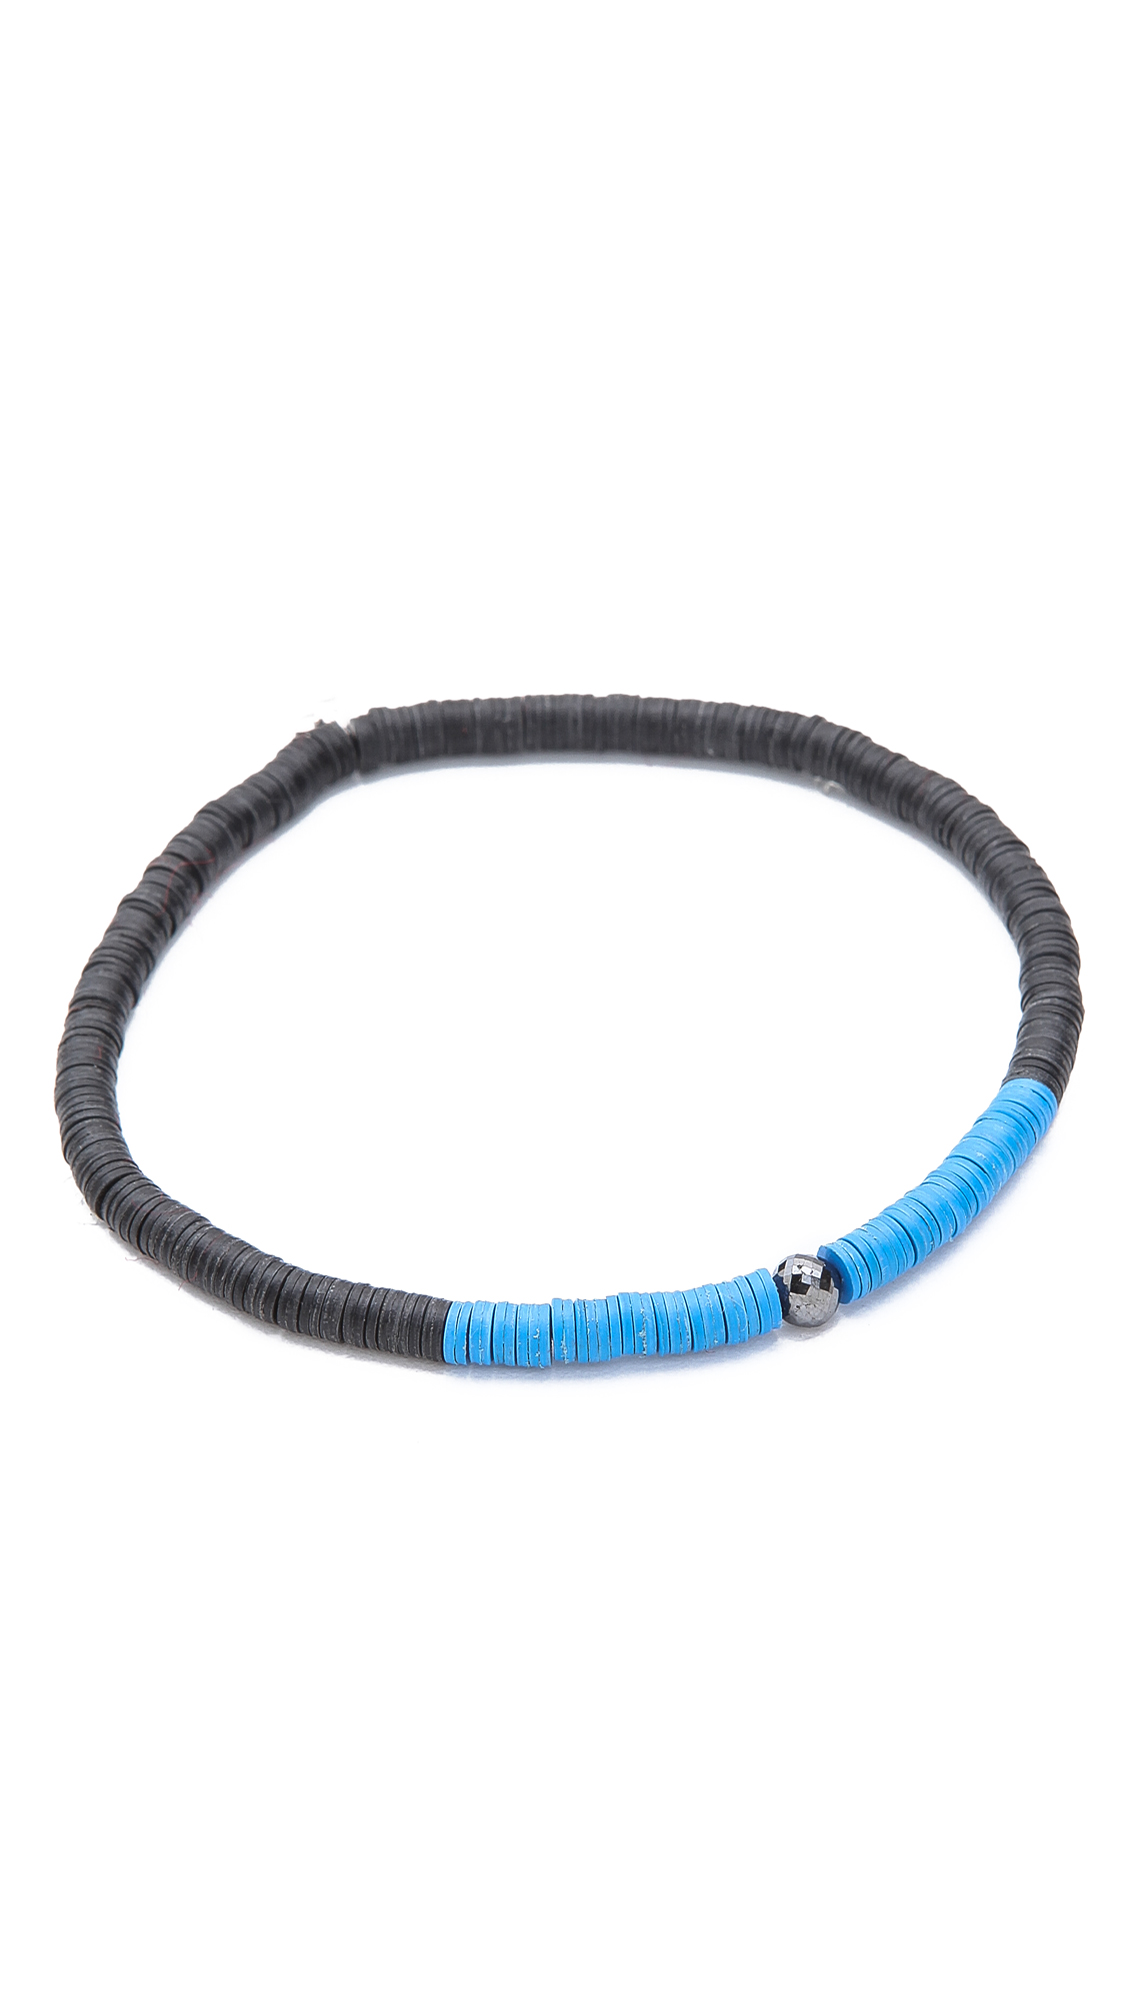 Yuvi Black Diamond Bracelet With African Vinyl In Blue For